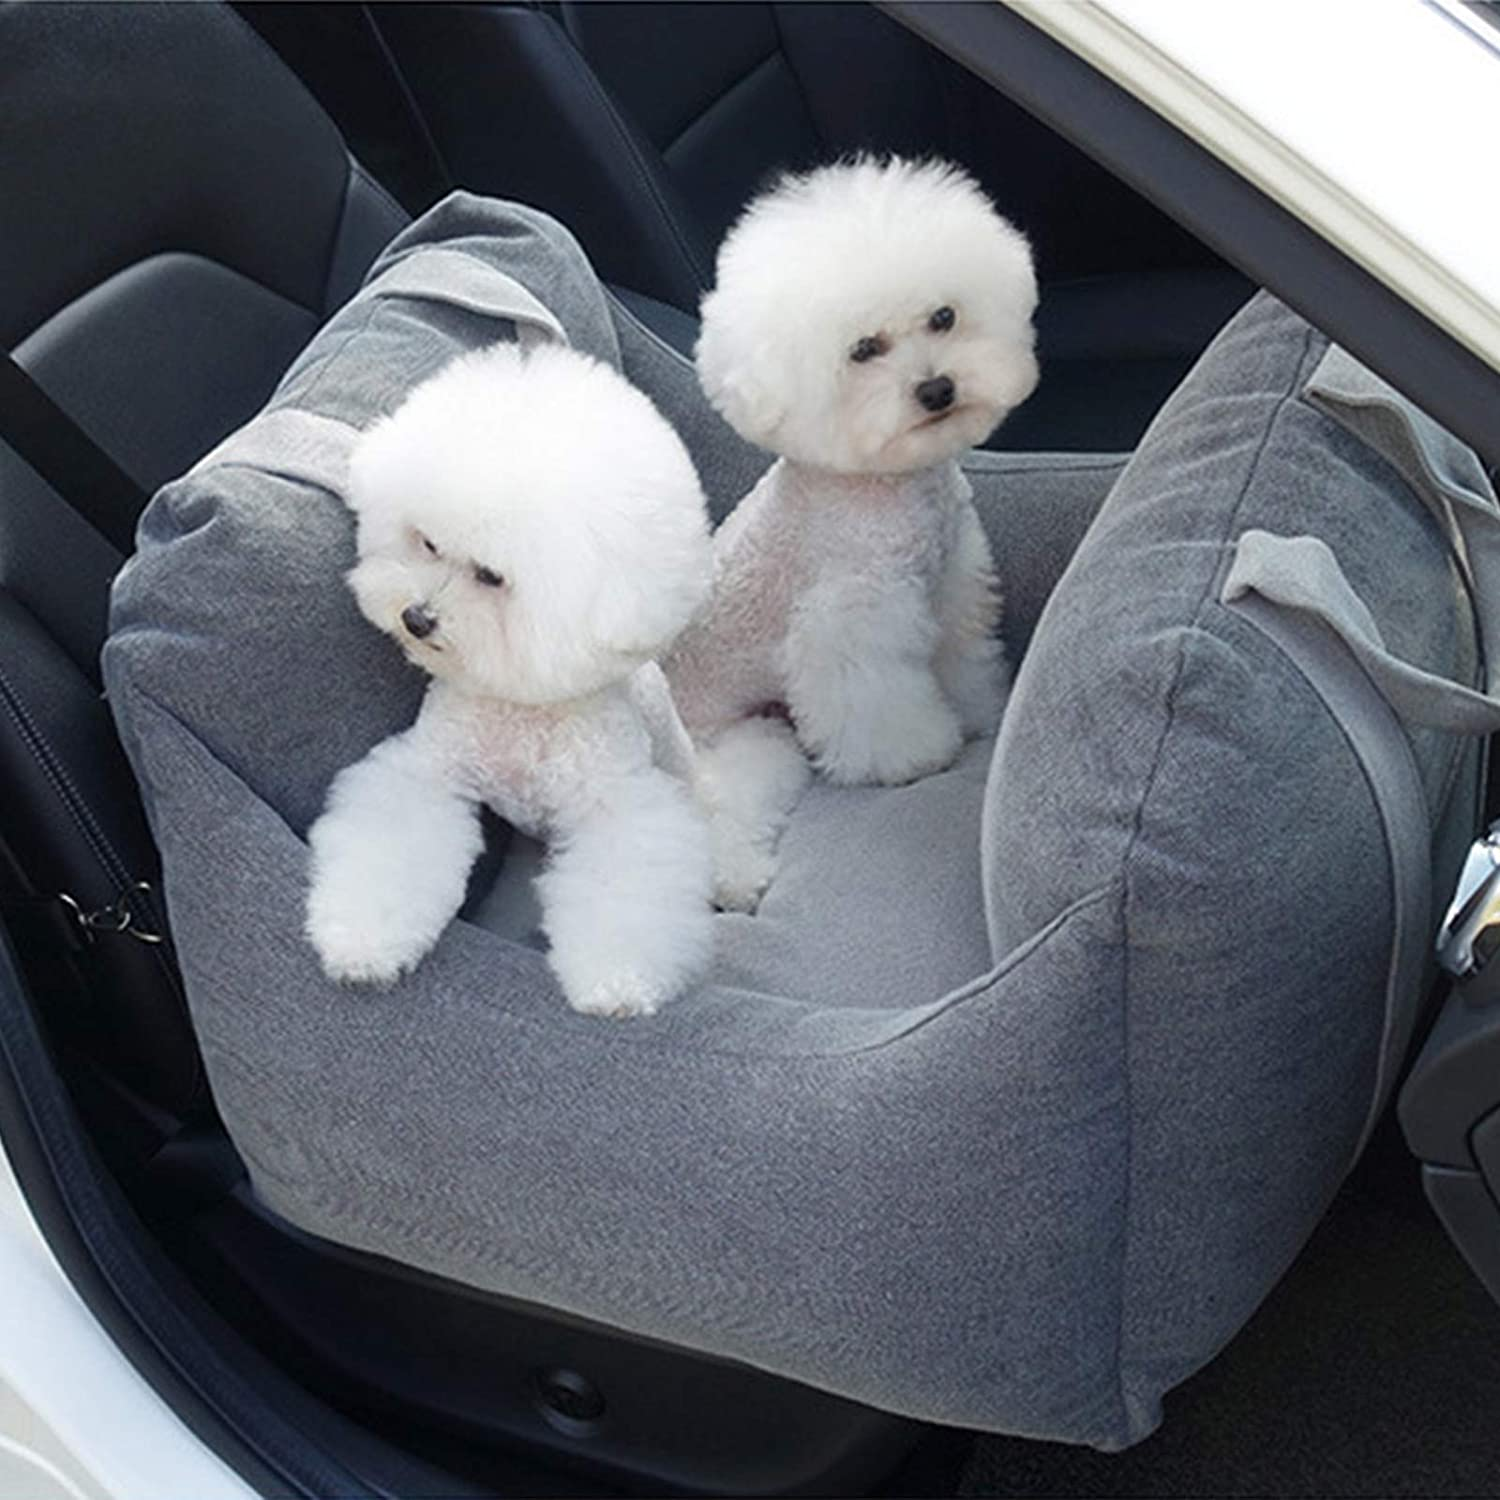 BESTHLS Dog Recommended Car Seat for New York Mall Small and Medium Dogs lbs 30 to up Cats